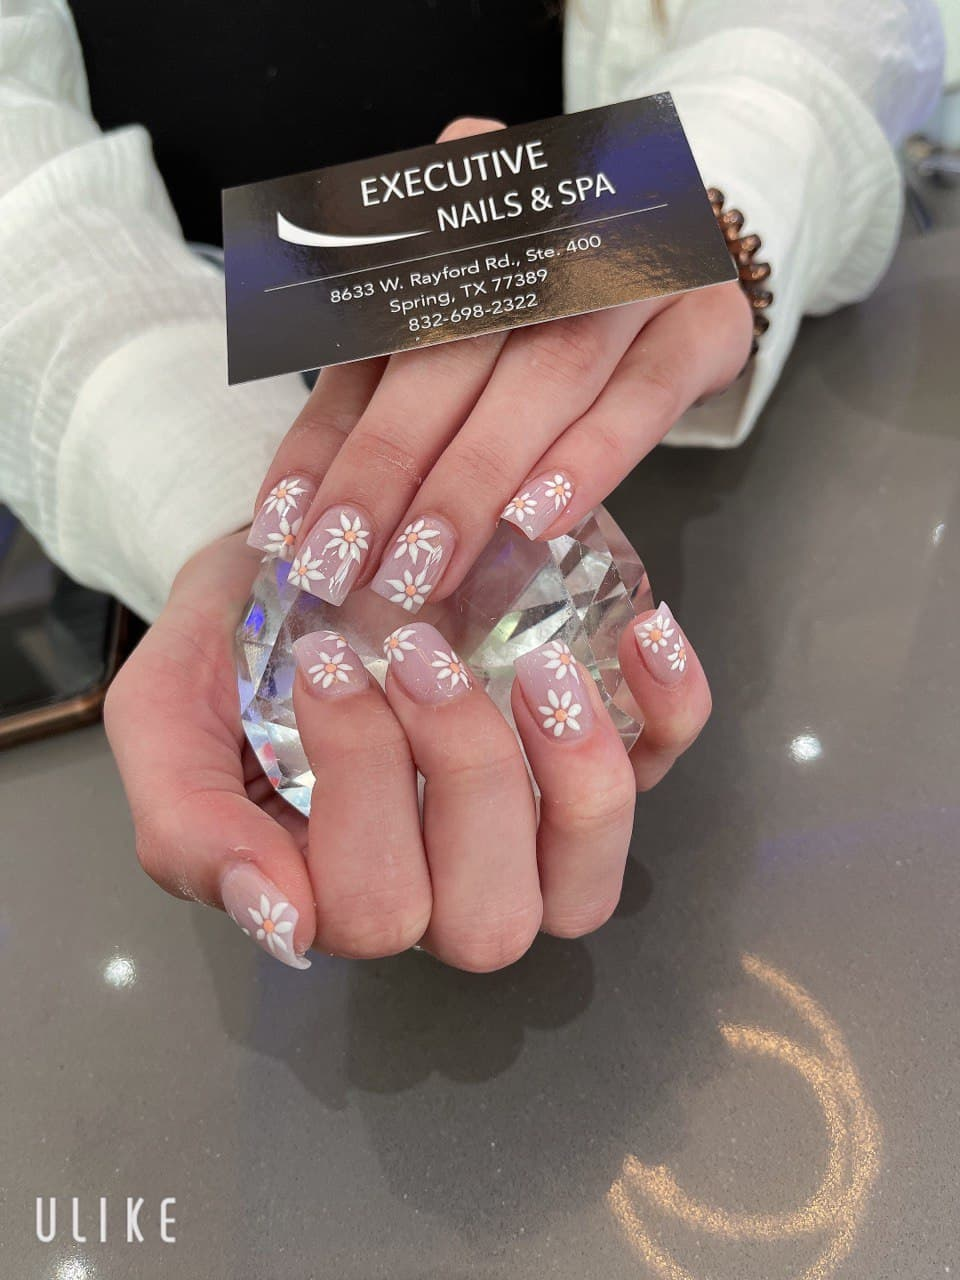 gallery - Executive Nails and Spa in Spring, Texas 77389